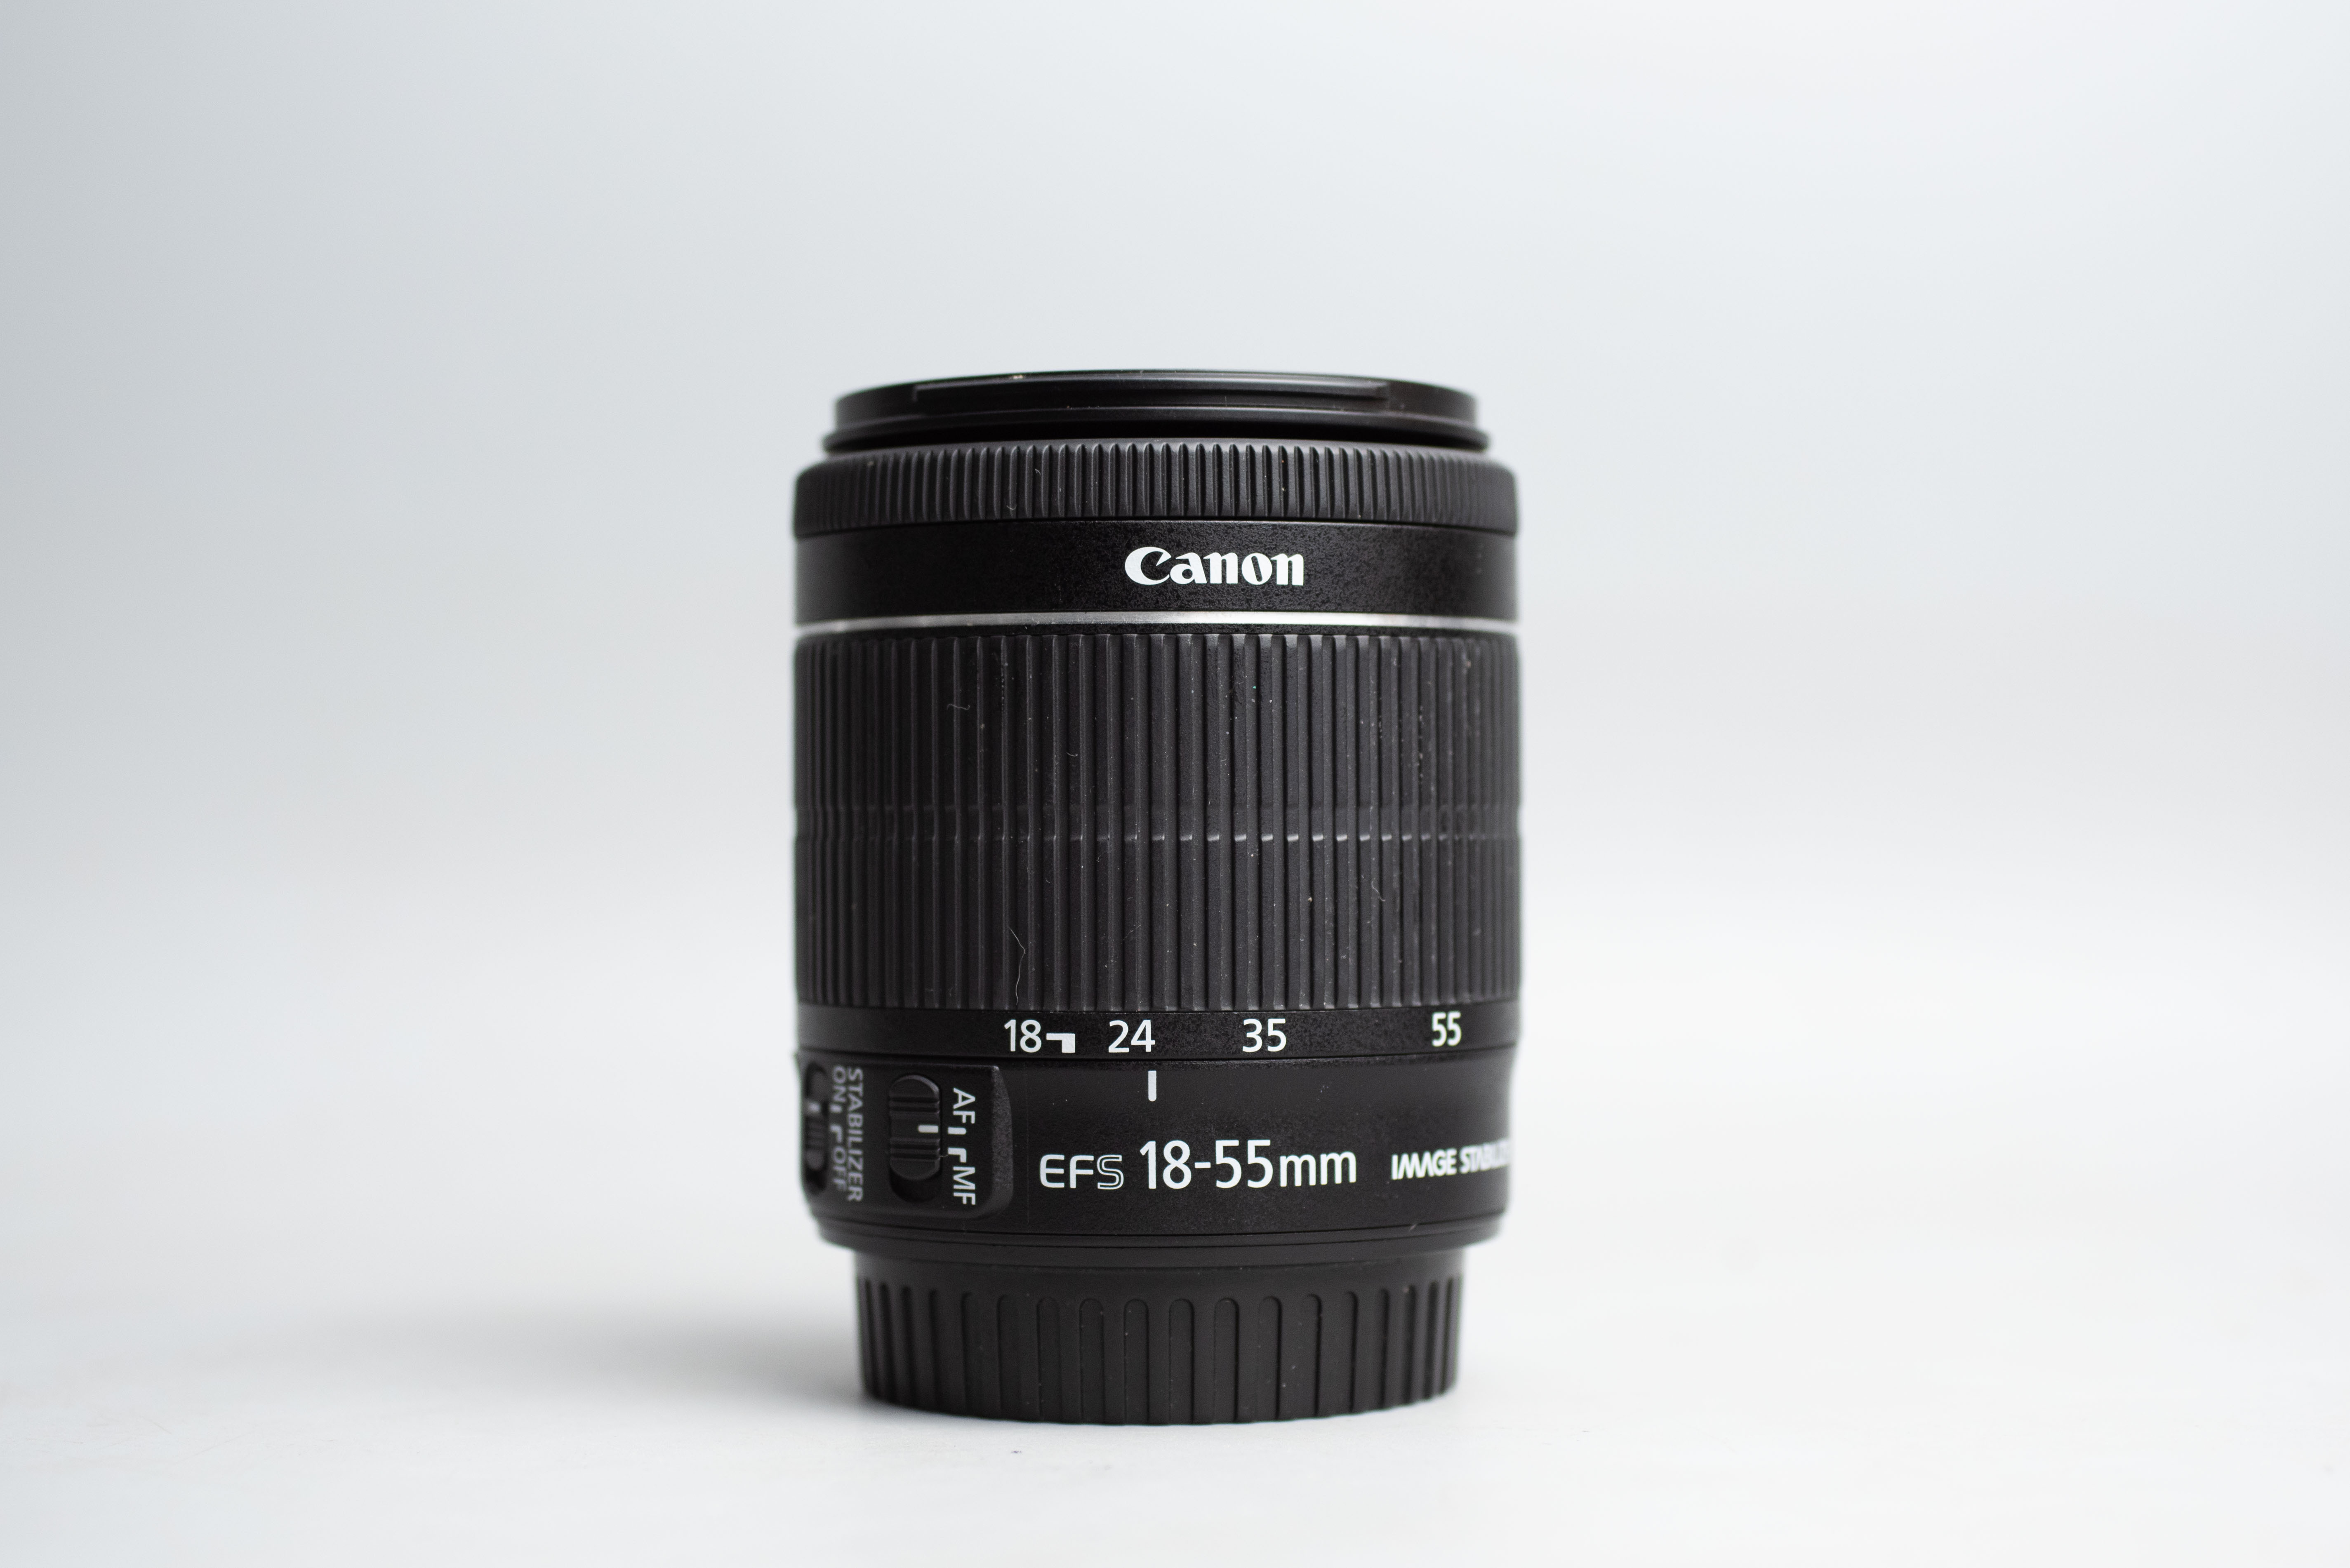 canon-ef-s-18-55mm-f3-5-5-6-is-stm-af-canon-18-55-3-5-5-6-18344